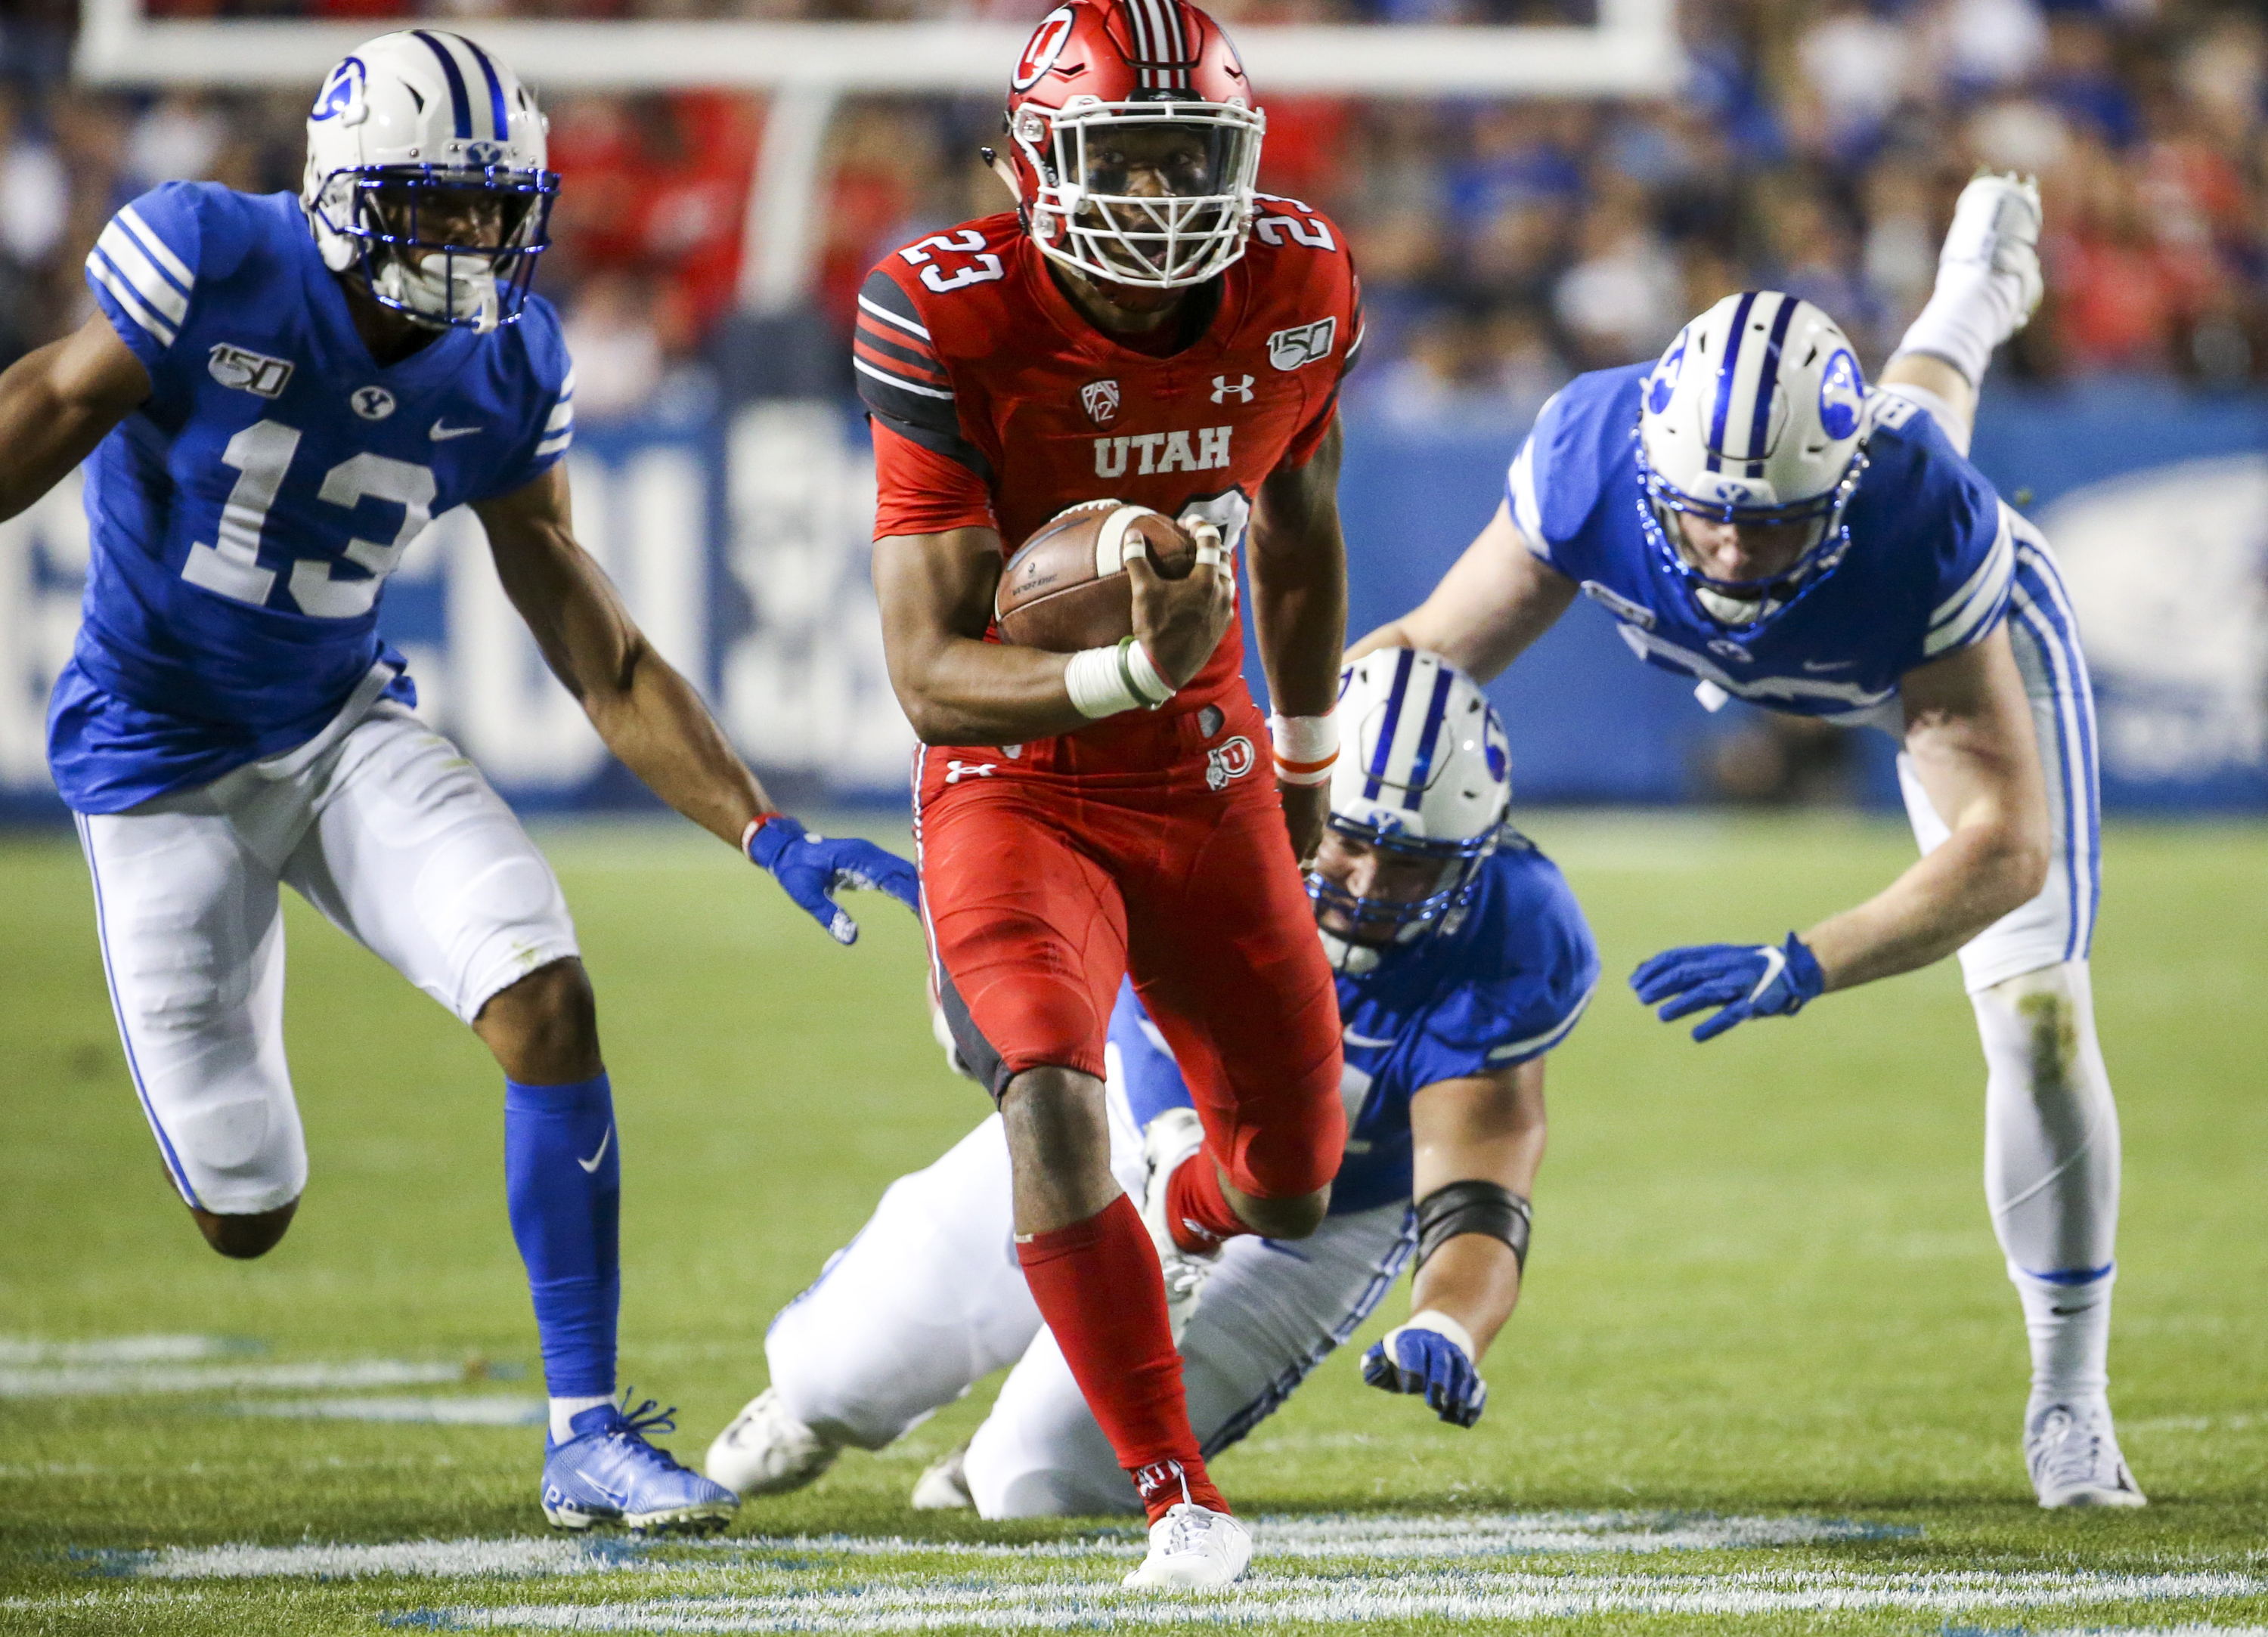 Utah defensive back Julian Blackmon (23) runs an interception back for a touchdown during the second half of the Utah-BYU football game at LaVell Edwards Stadium in Provo on Thursday, Aug. 29, 2019.